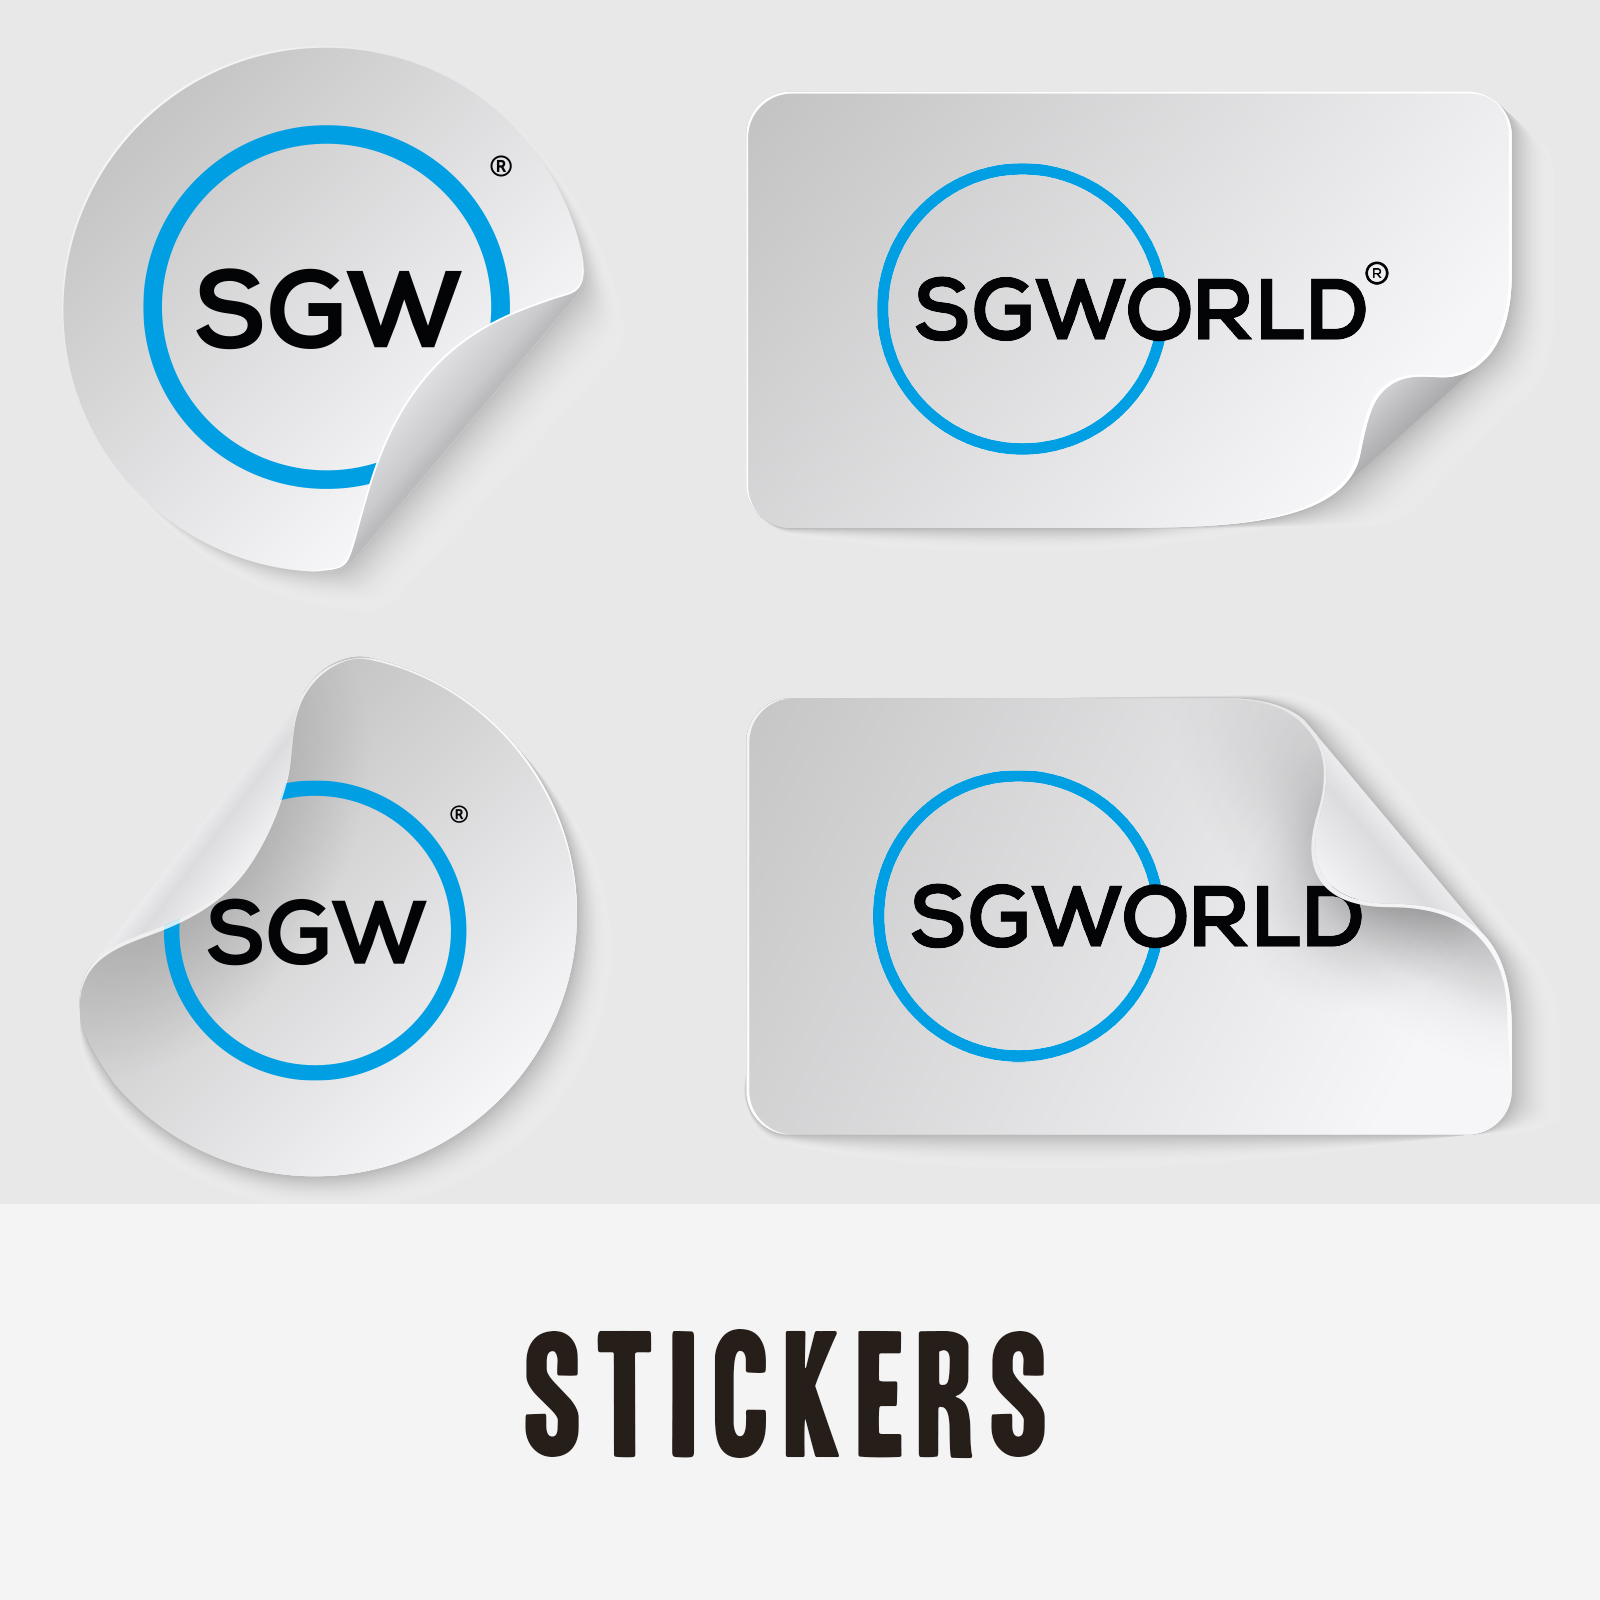 Stickers - JPEG - final - with text.jpg